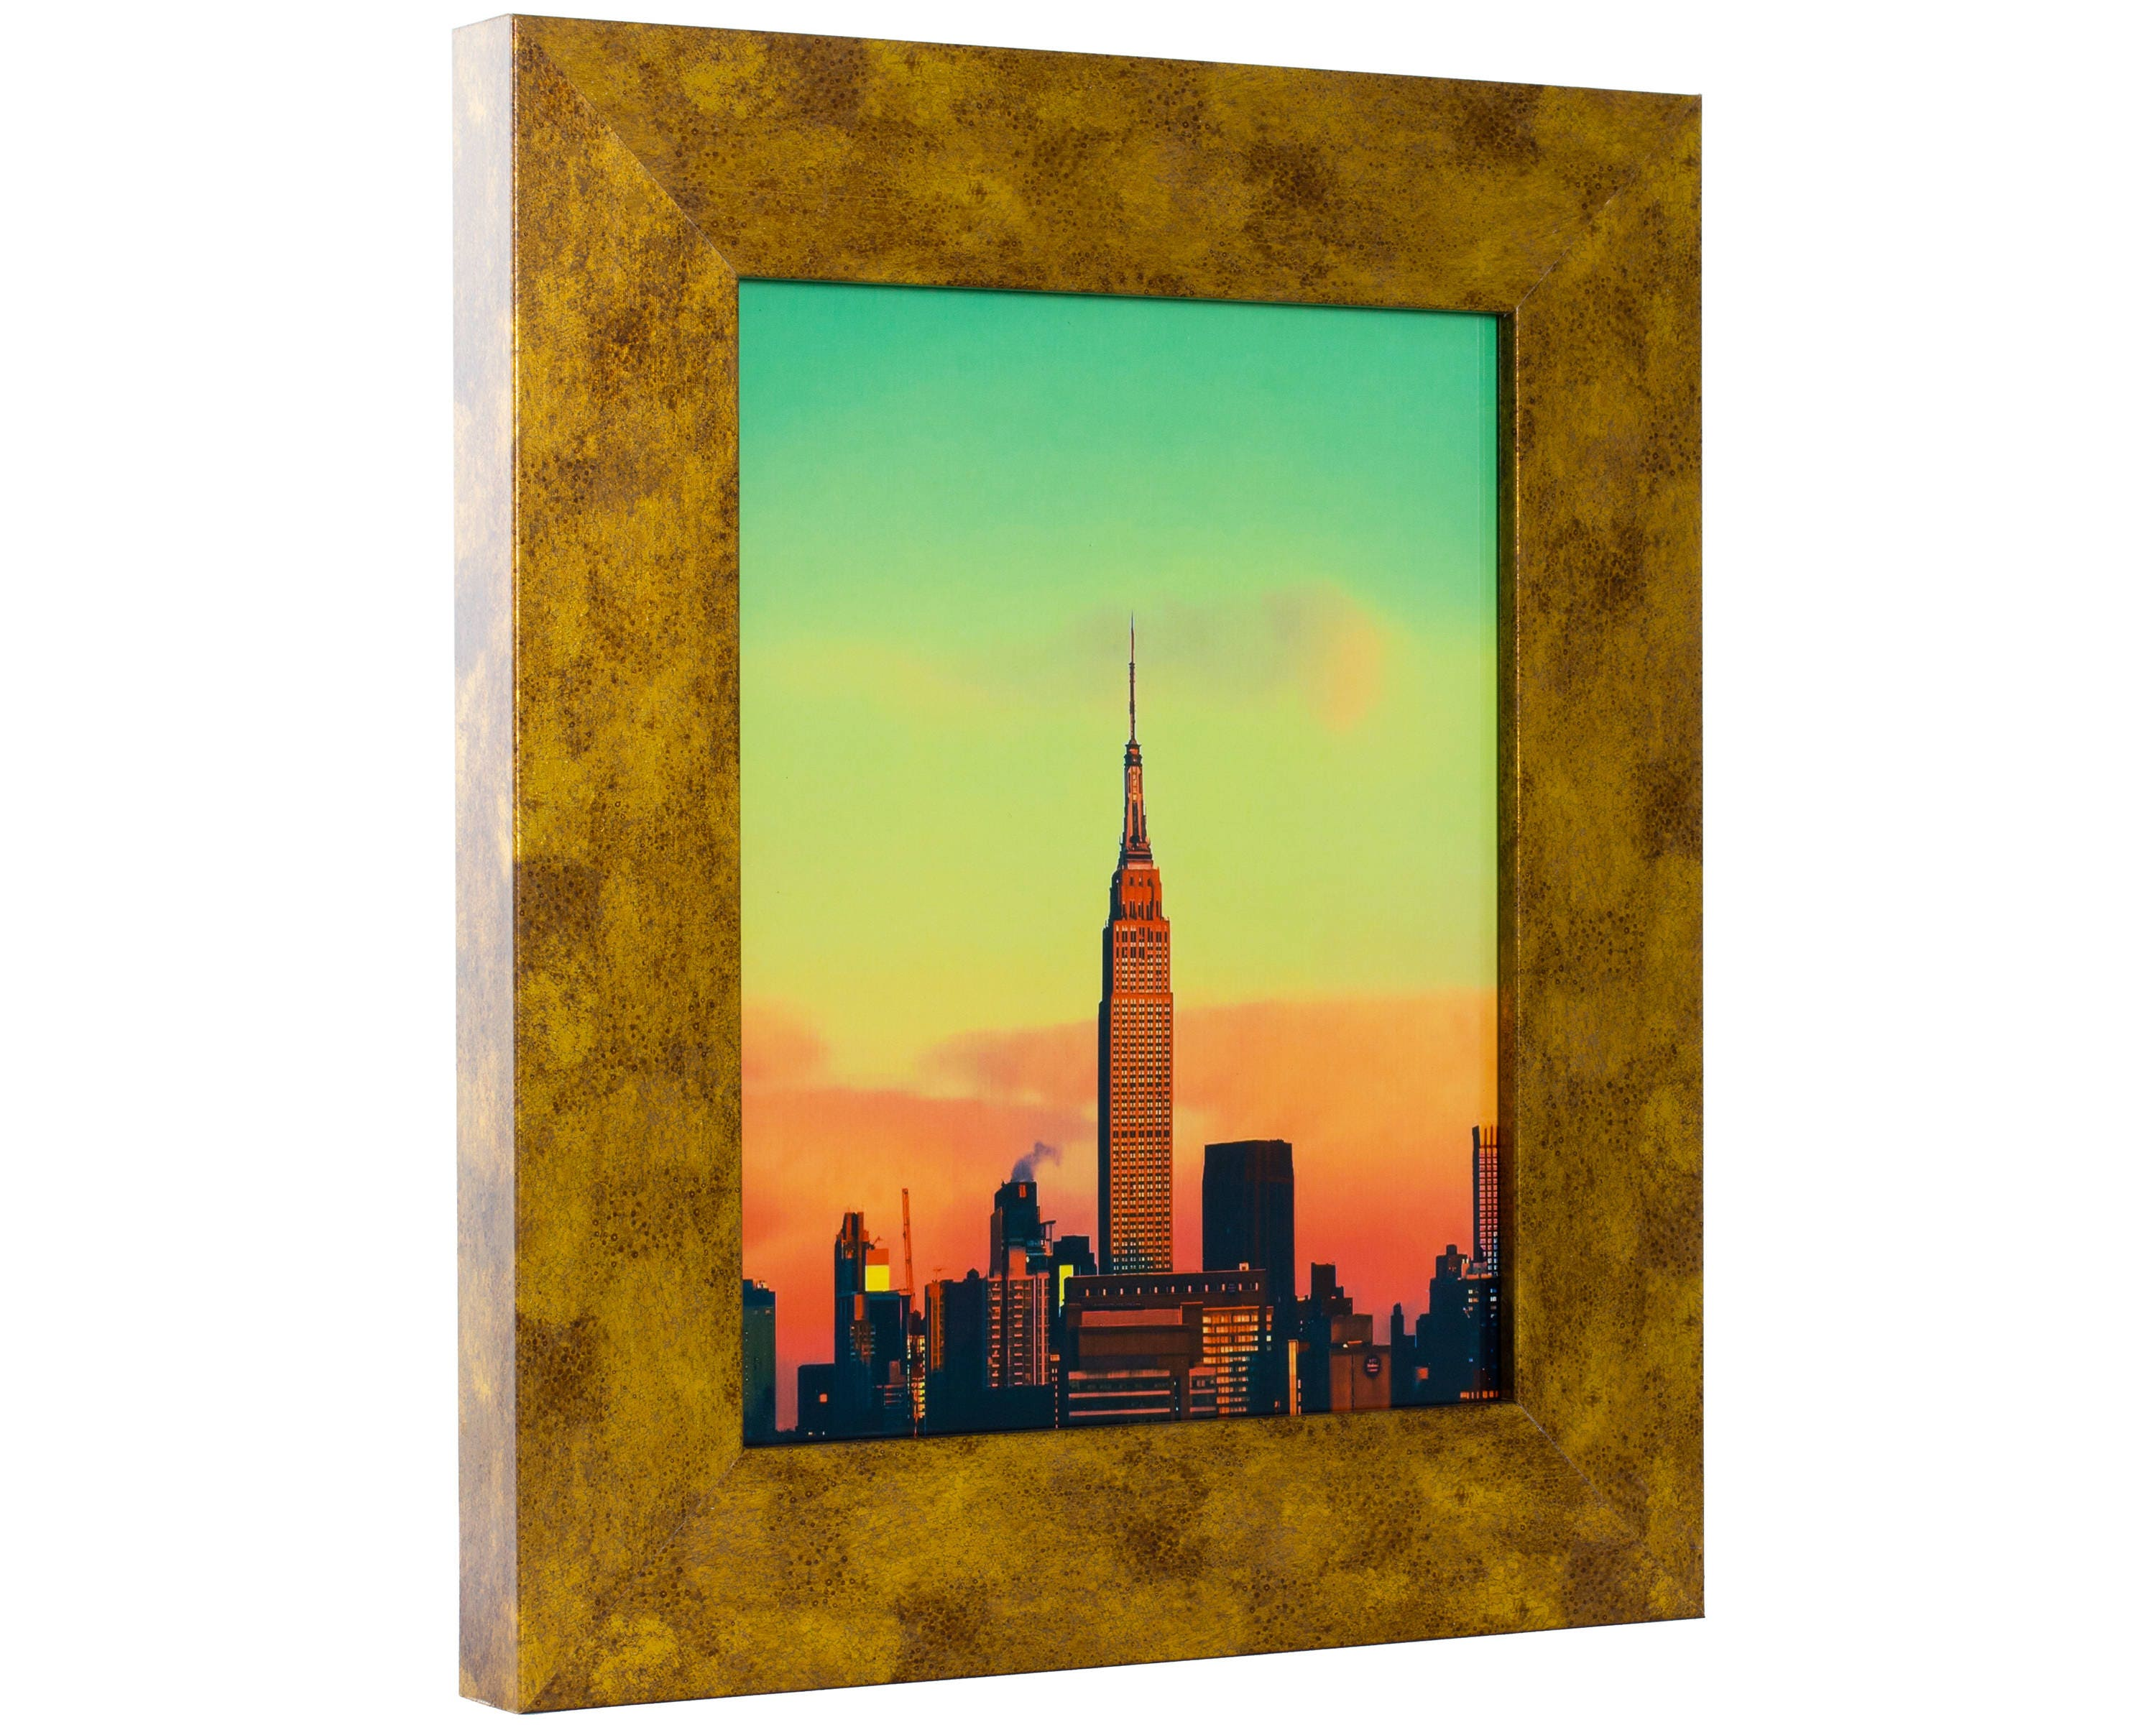 Craig frames 85x11 inch antique copper and gold picture frame sold by craigframes jeuxipadfo Gallery